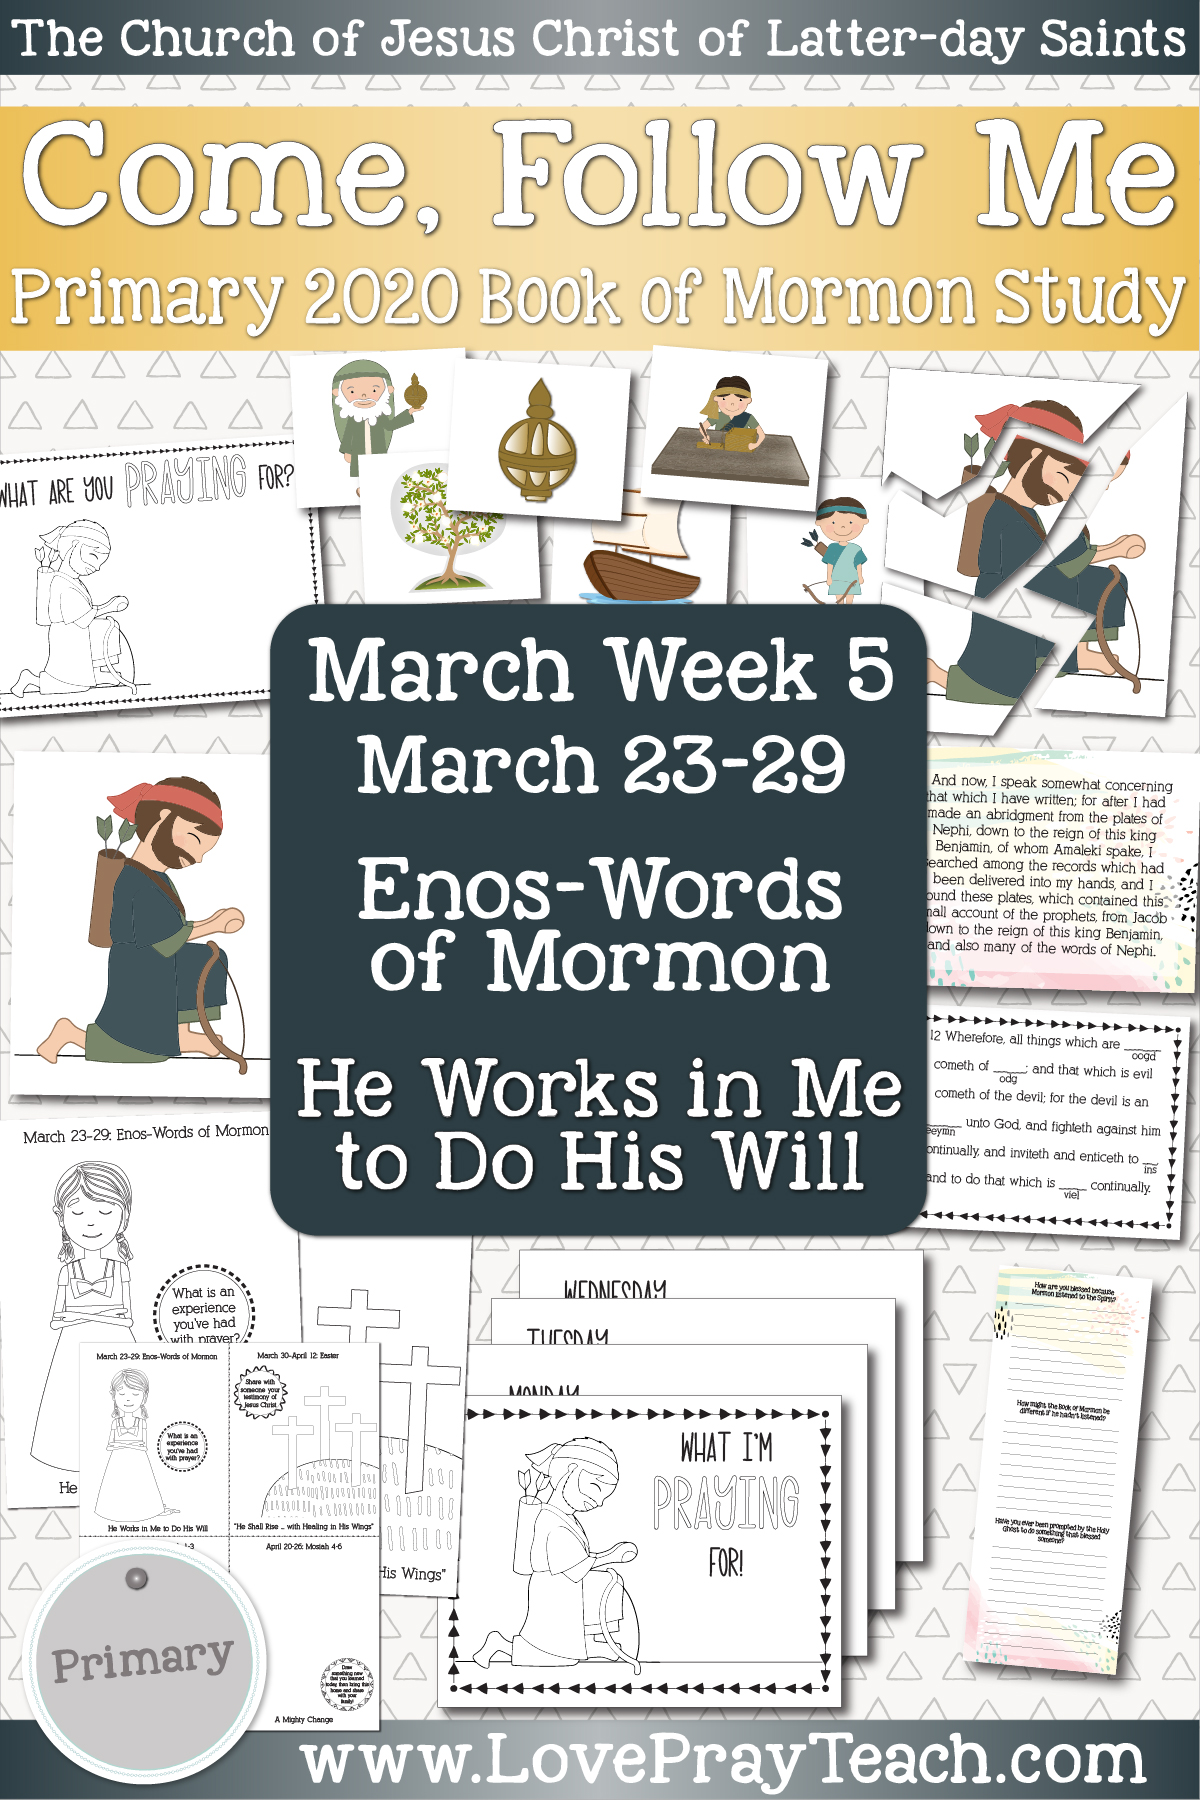 Come, Follow Me for Primary March Week 5: March 23-29 Enos-Words of Mormon He Works in Me to Do His Will www.LovePrayTeach.com